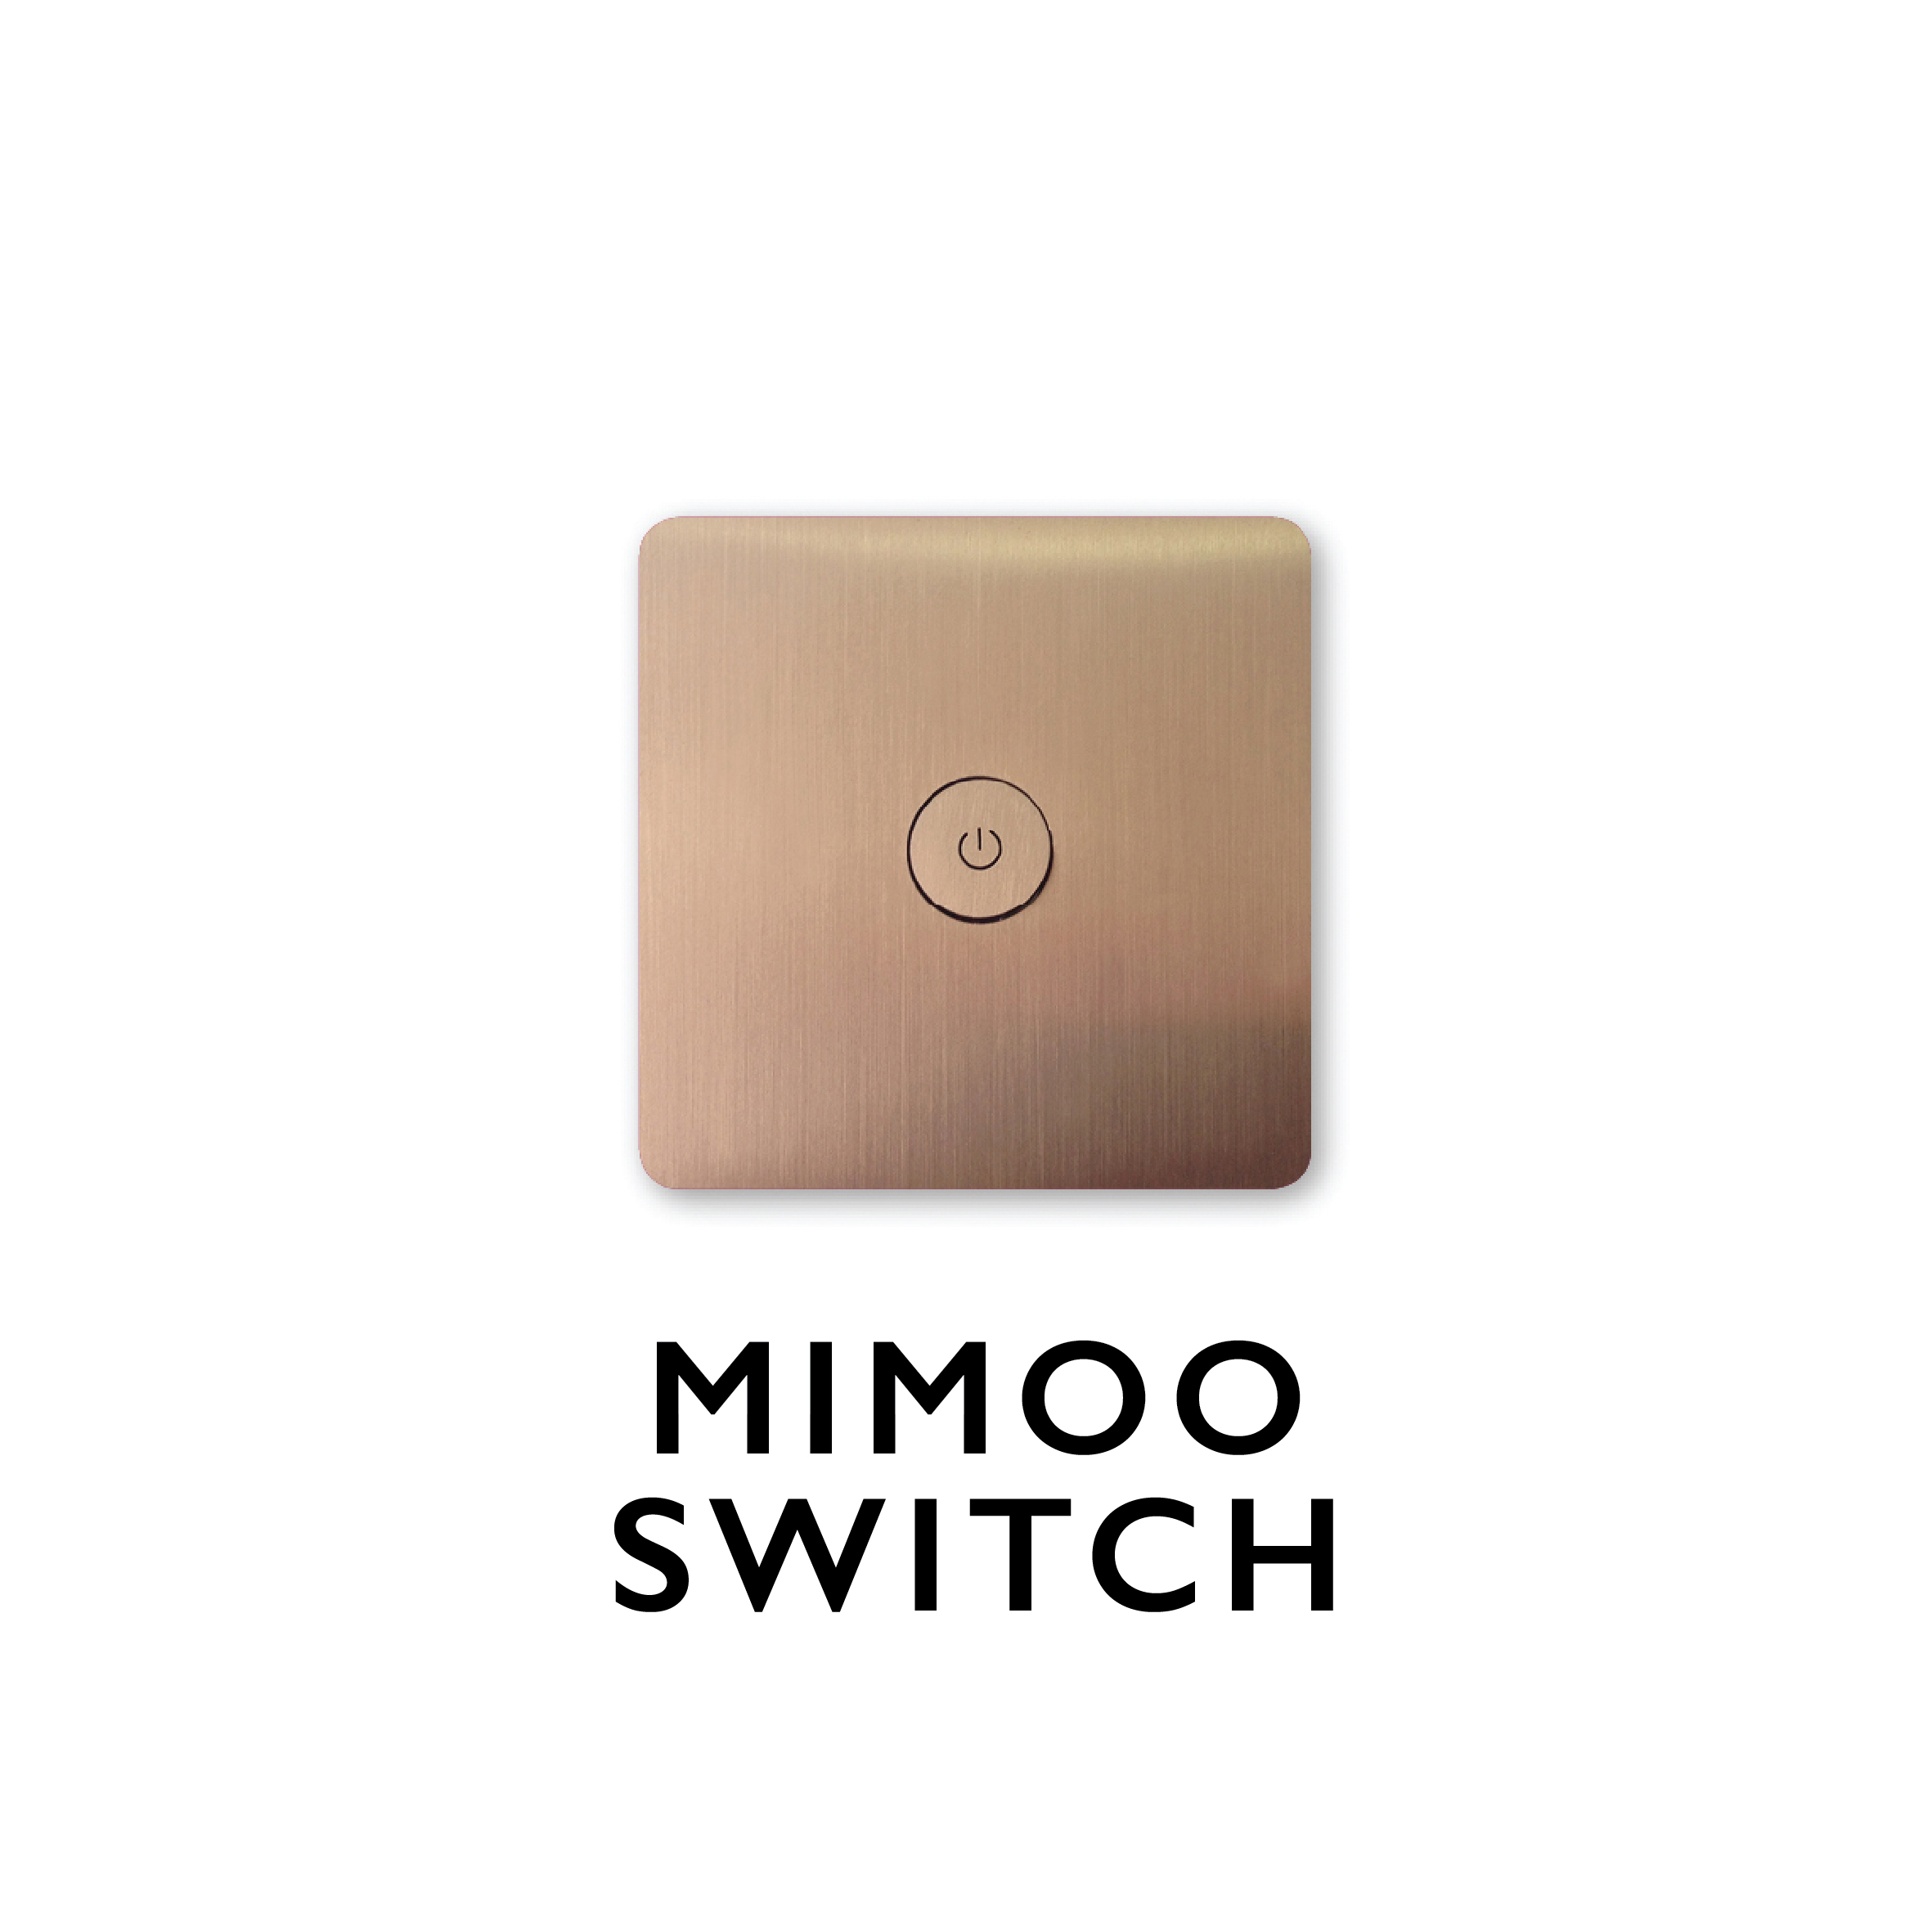 MIMOO SWITCH – MANUEL D'INSTRUCTIONS